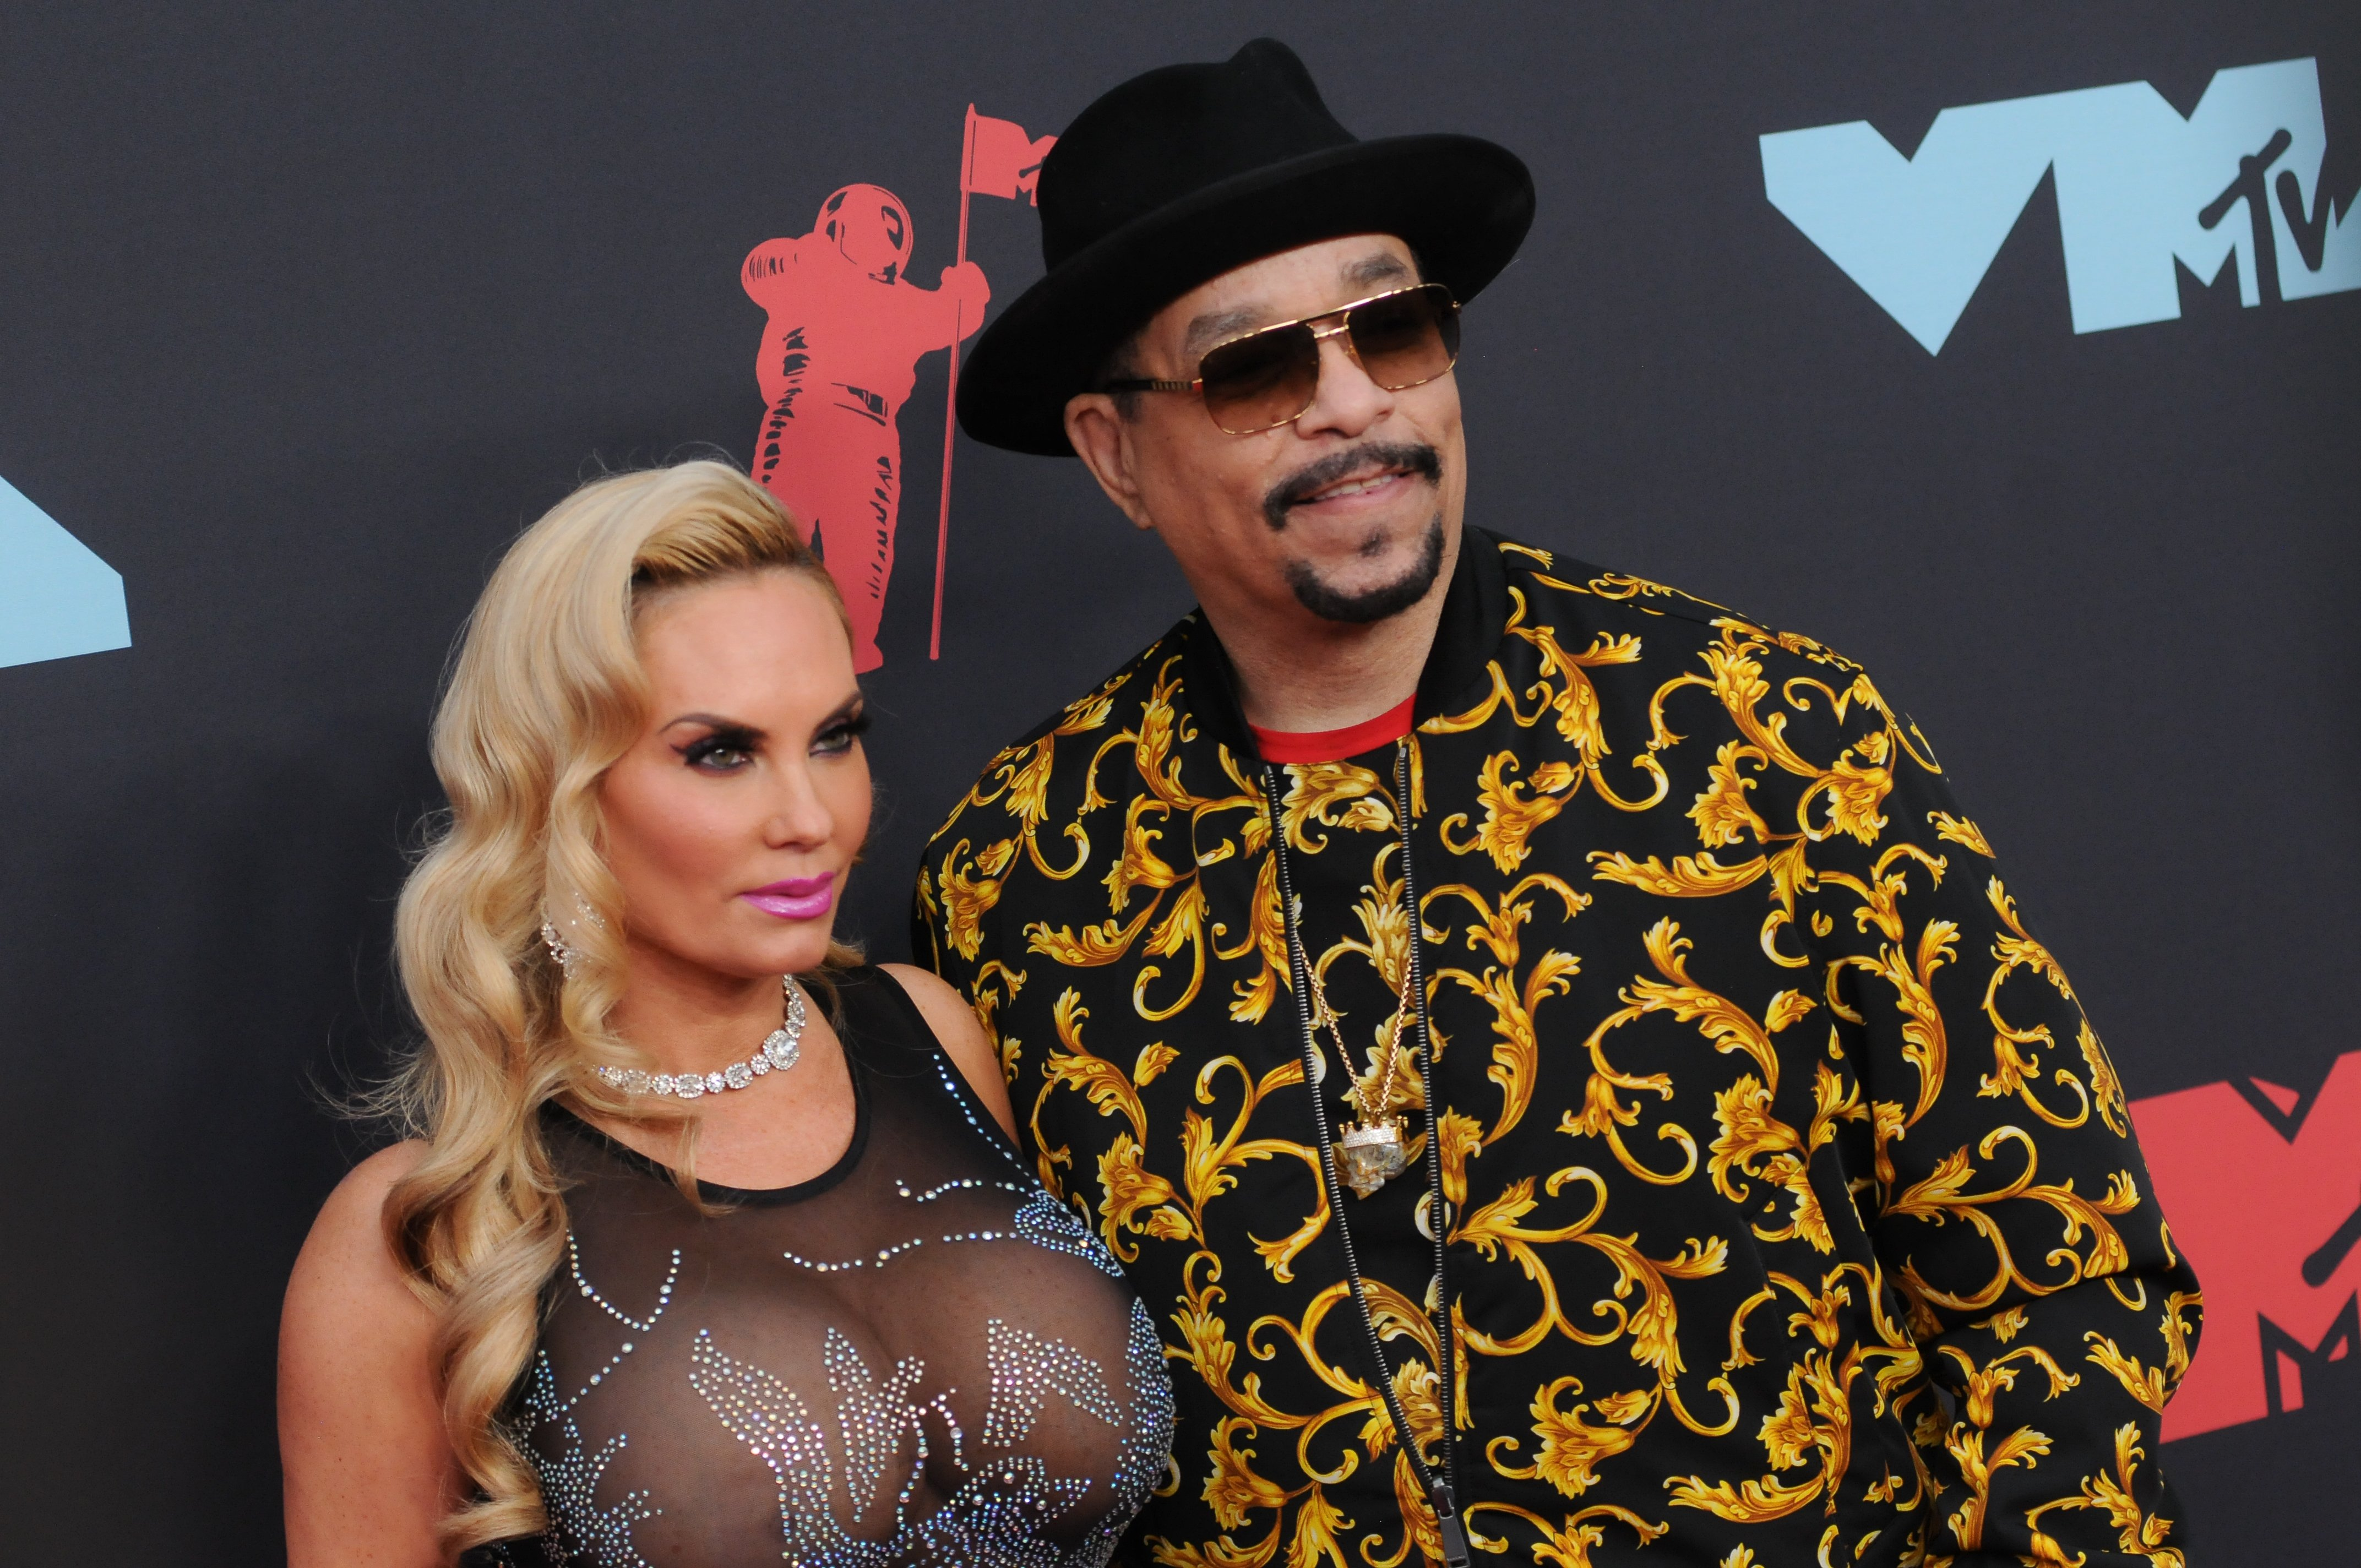 Coco Austin and Ice-T pose at the 2019 MTV Video Music Video Awards held at the Prudential Center in Newark, NJ.   Source: Getty Images